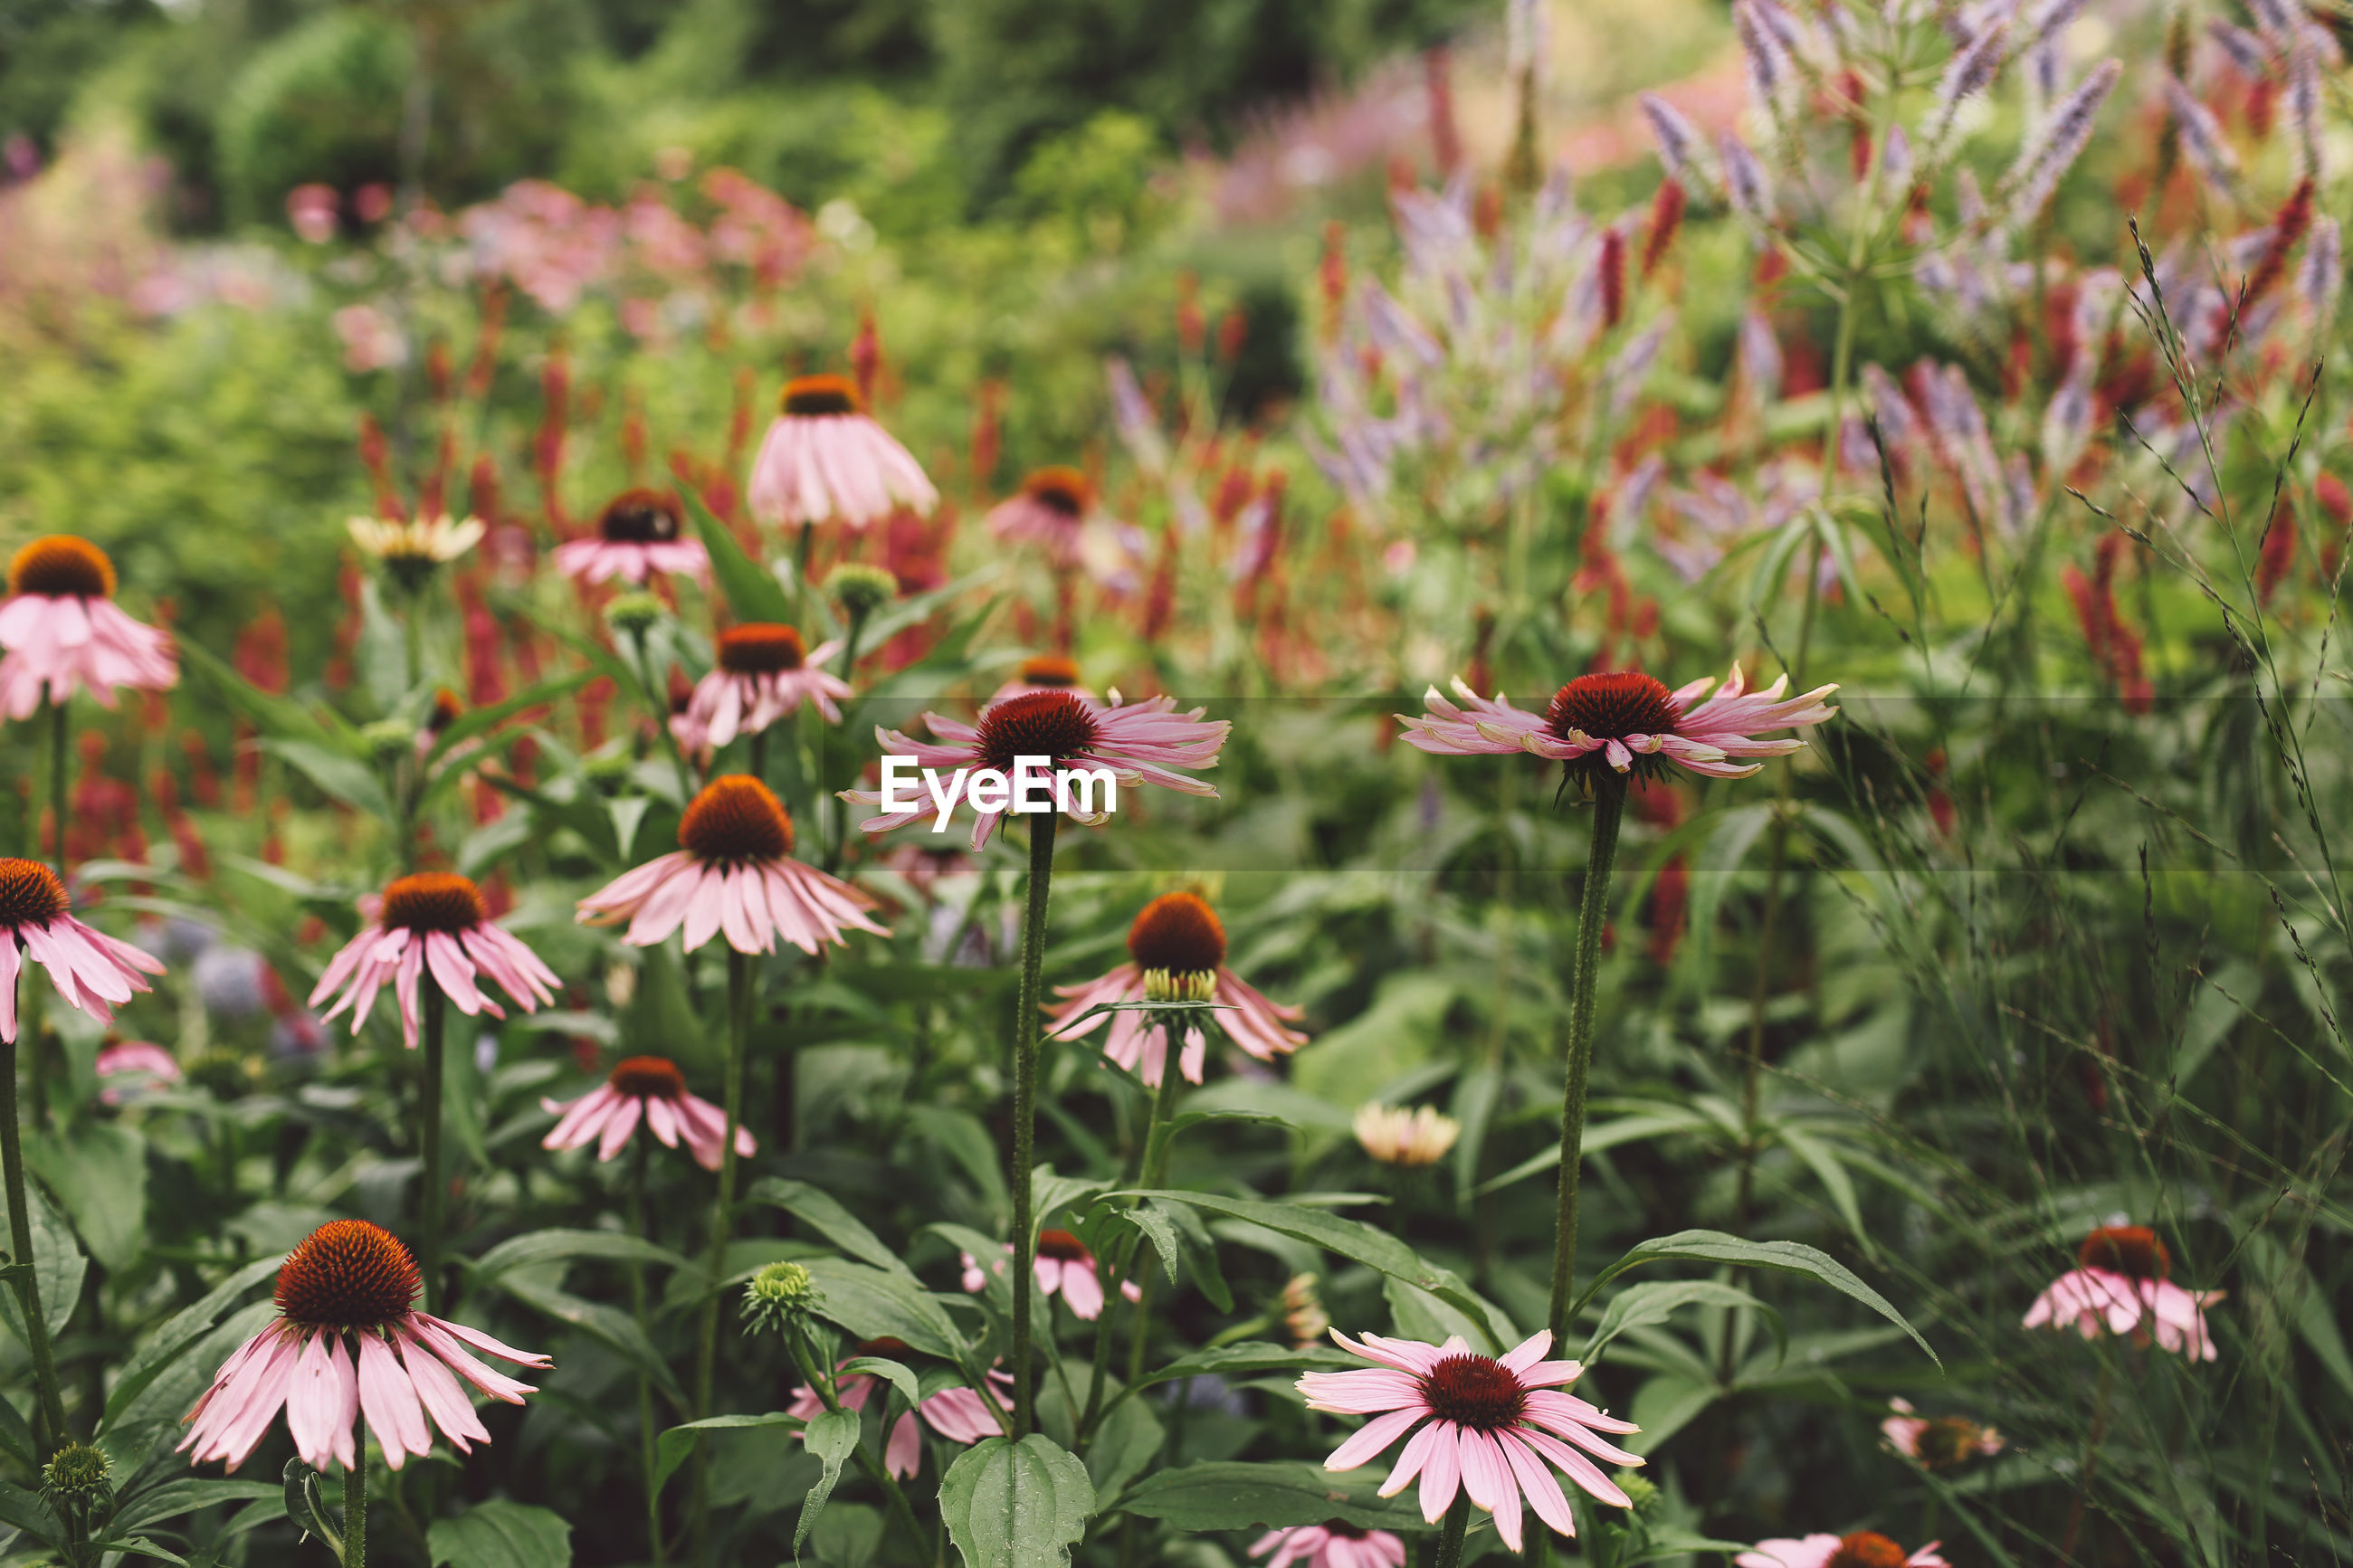 Echinacea angustifolia flowers blooming in park